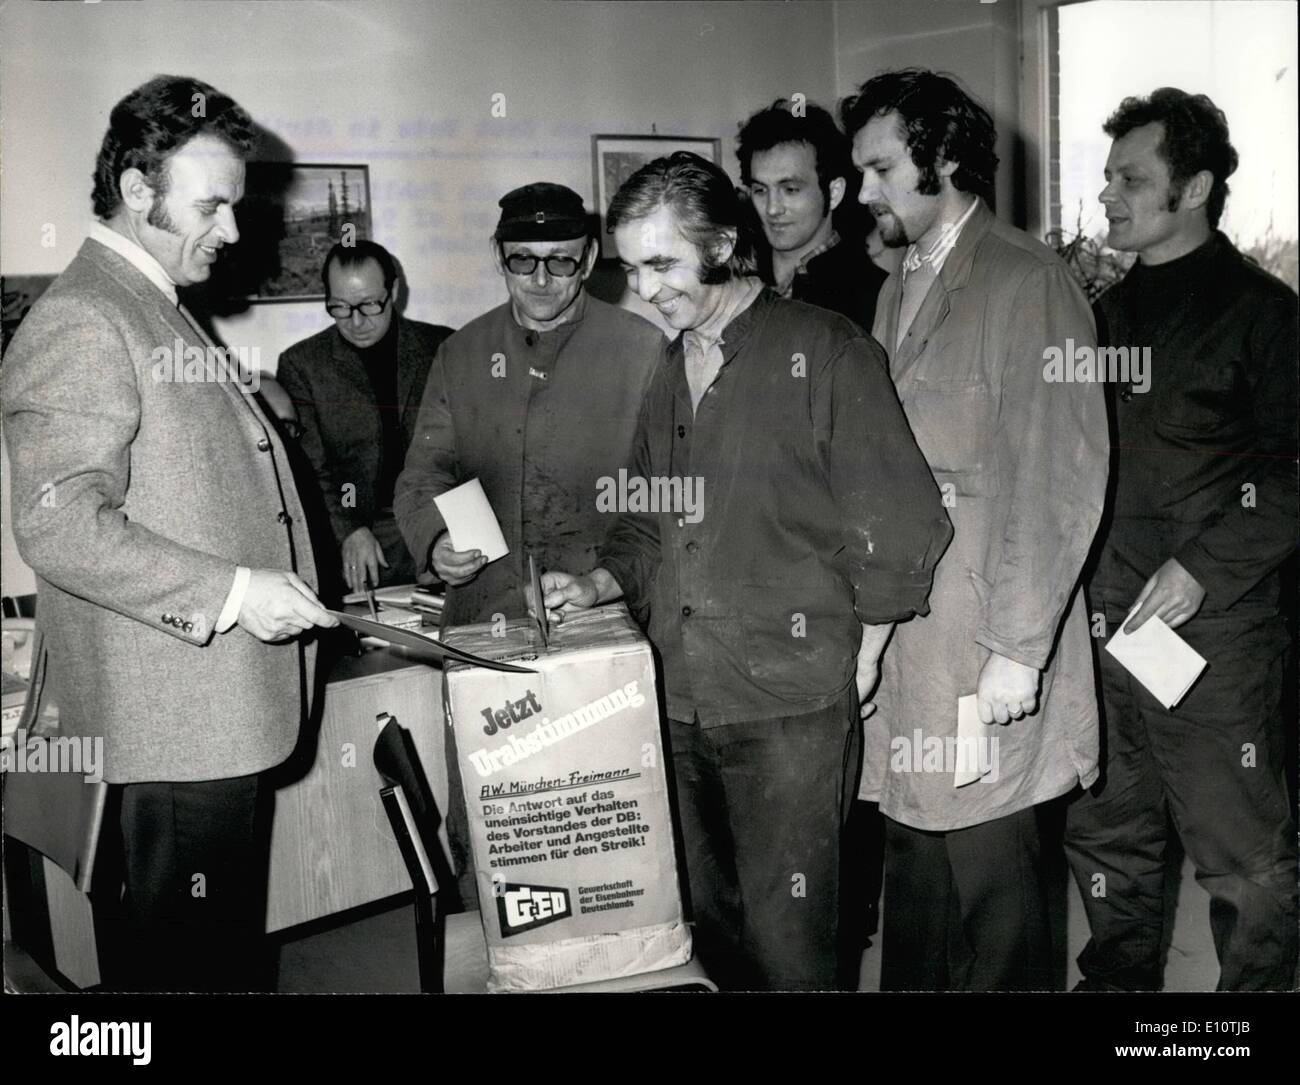 Feb. 02, 1974 - Public Services Employees Cast Vote in Strike Ballot Employees and workers of German Public Services - Stock Image